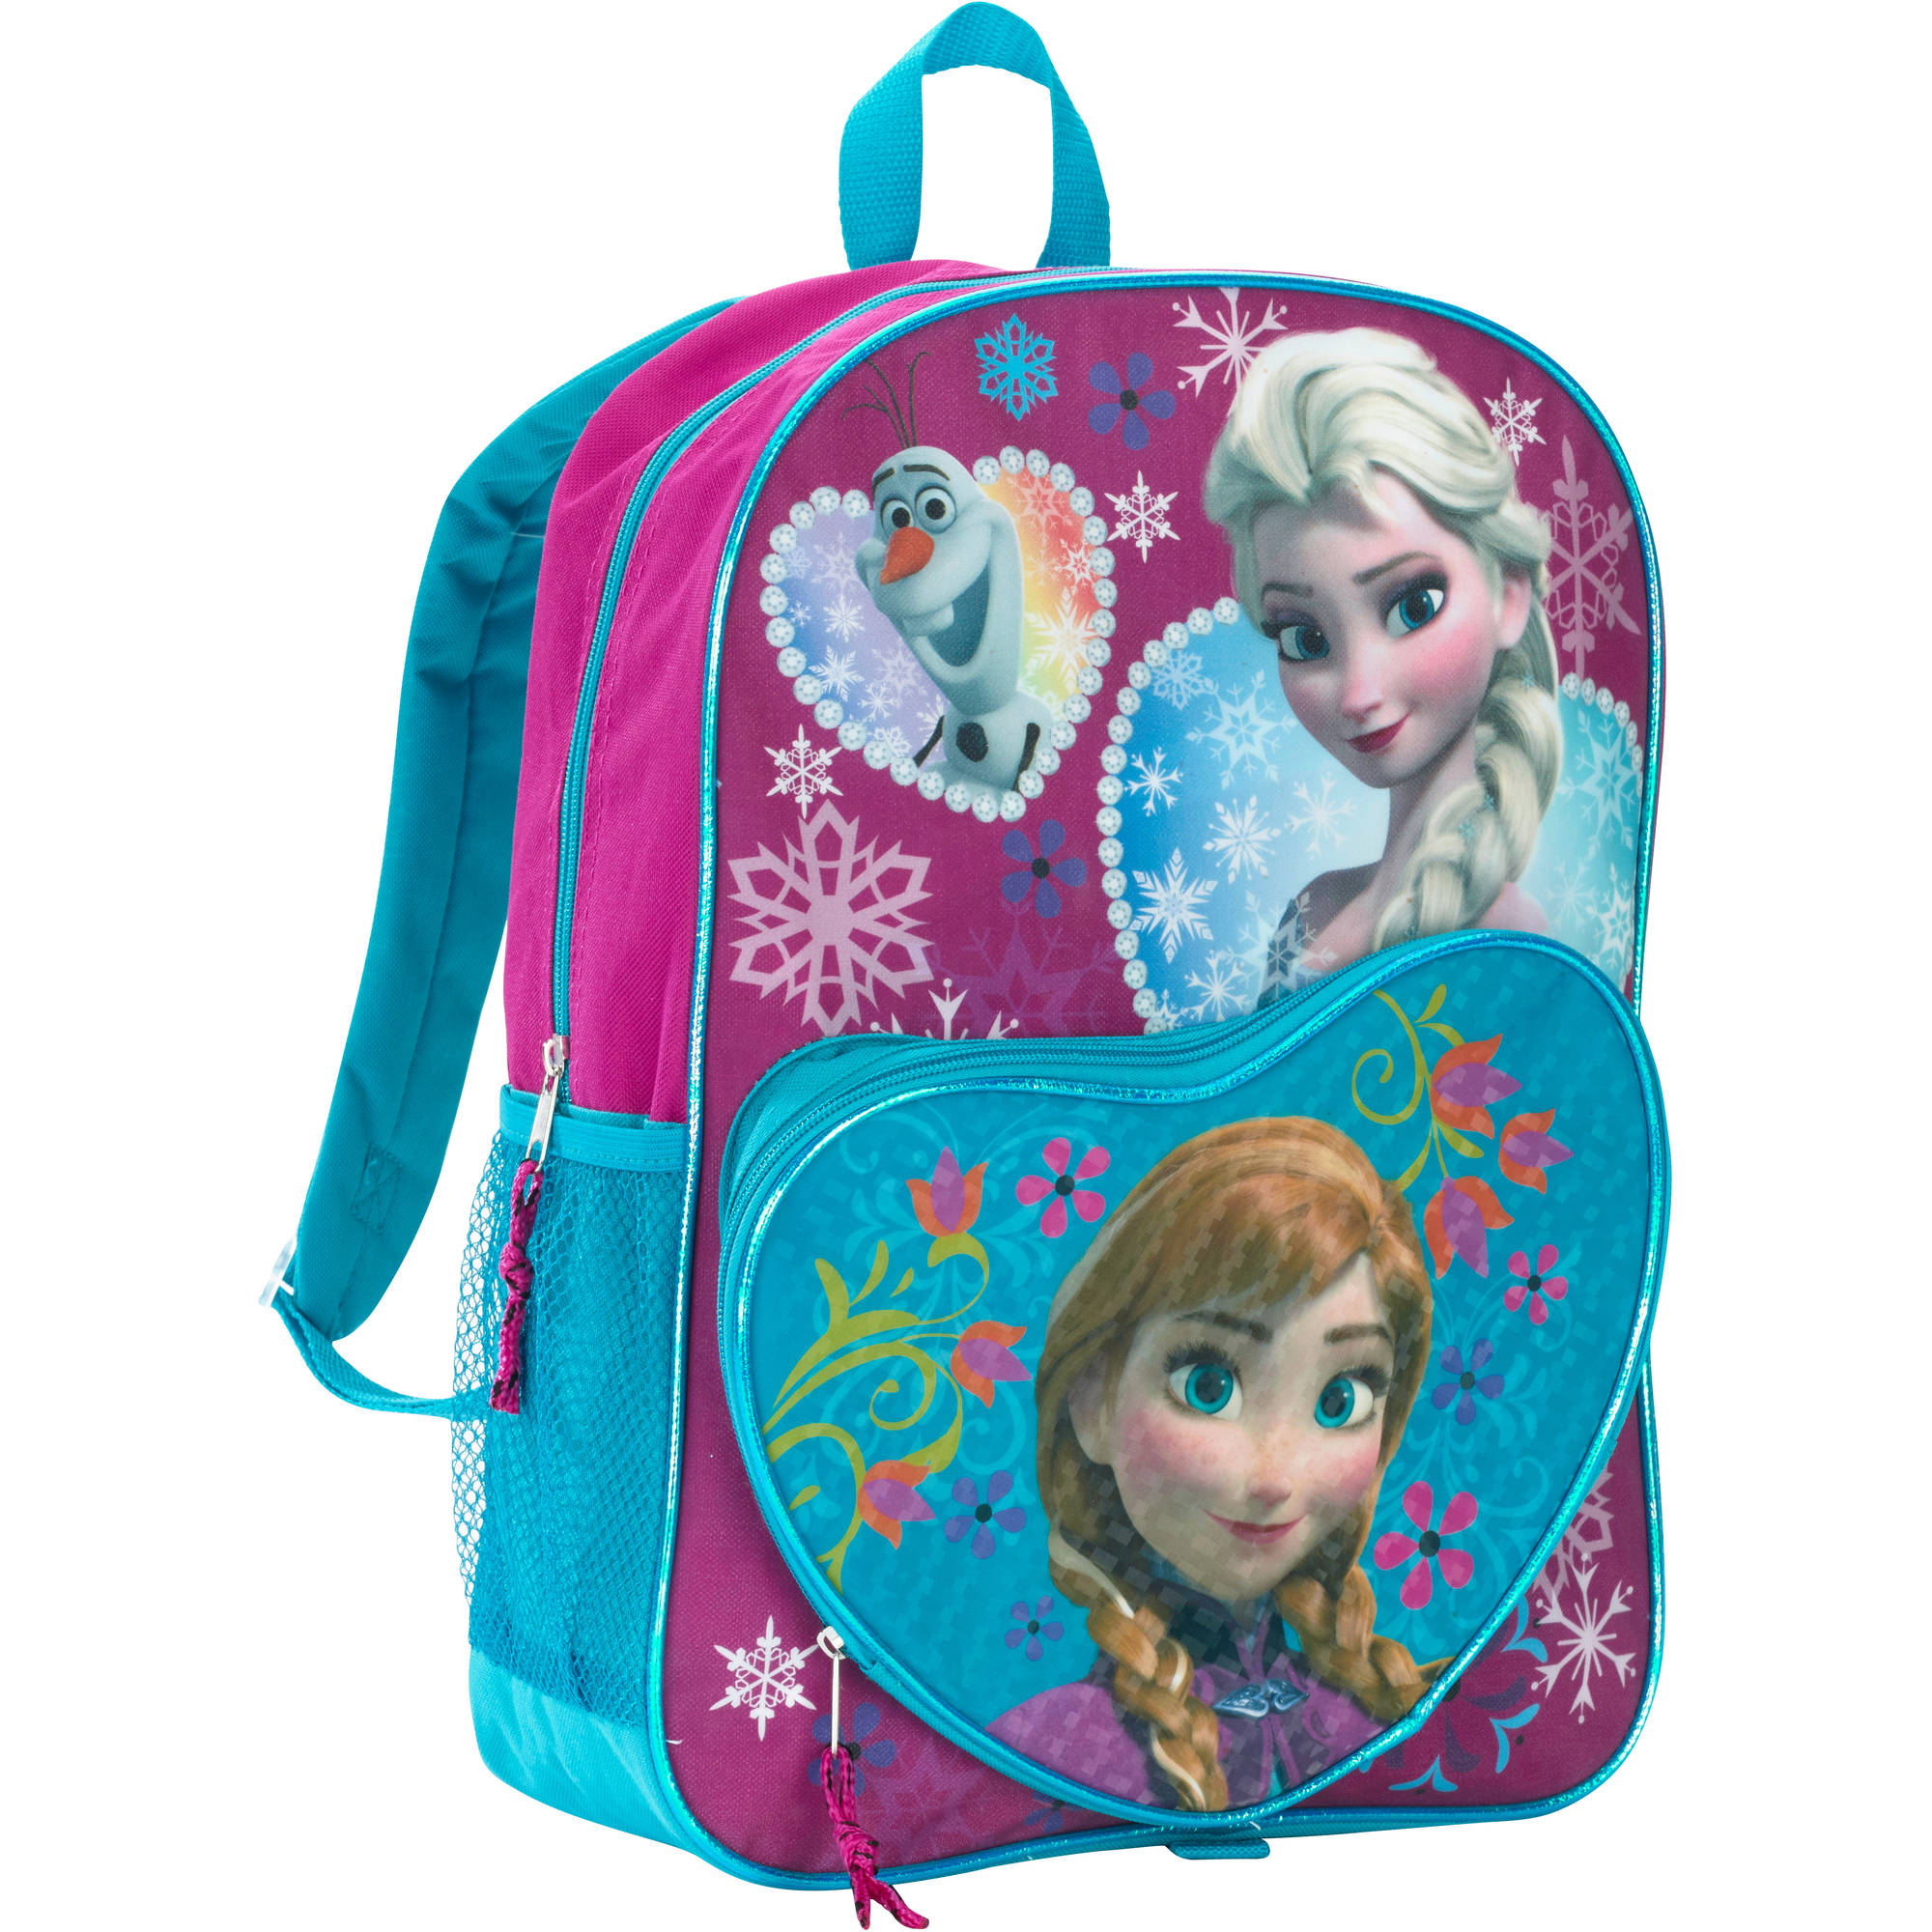 Kids Backpacks : Backpacks for kids - Walmart.com